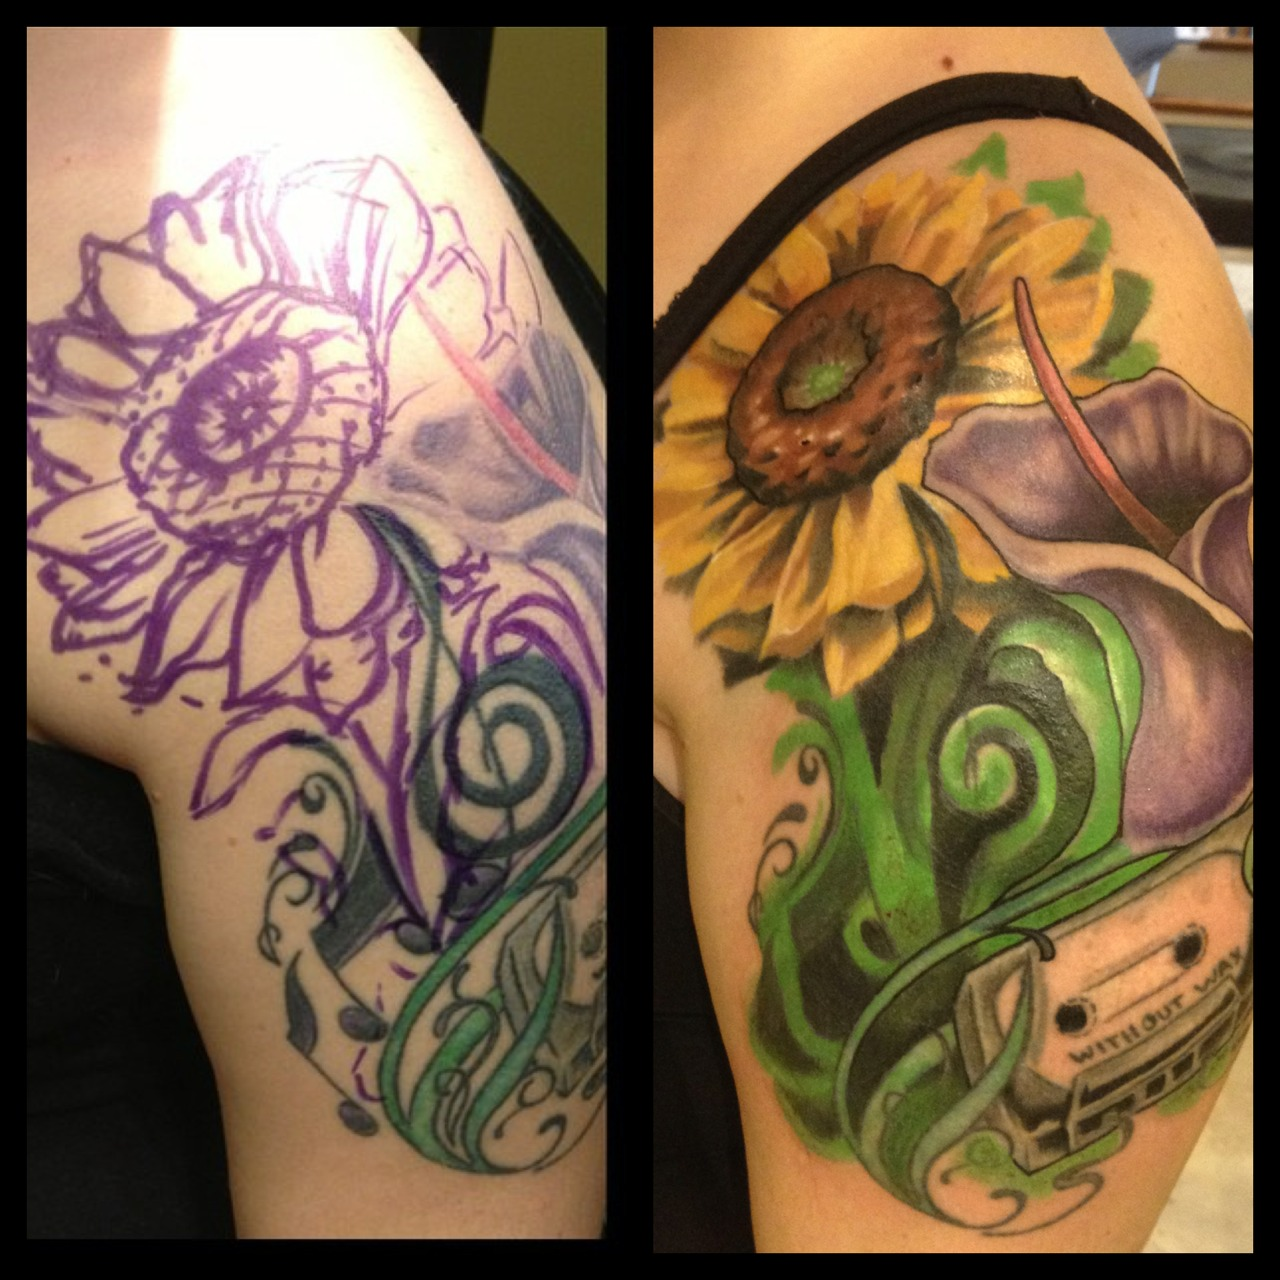 Rework / cover up freehand fix.